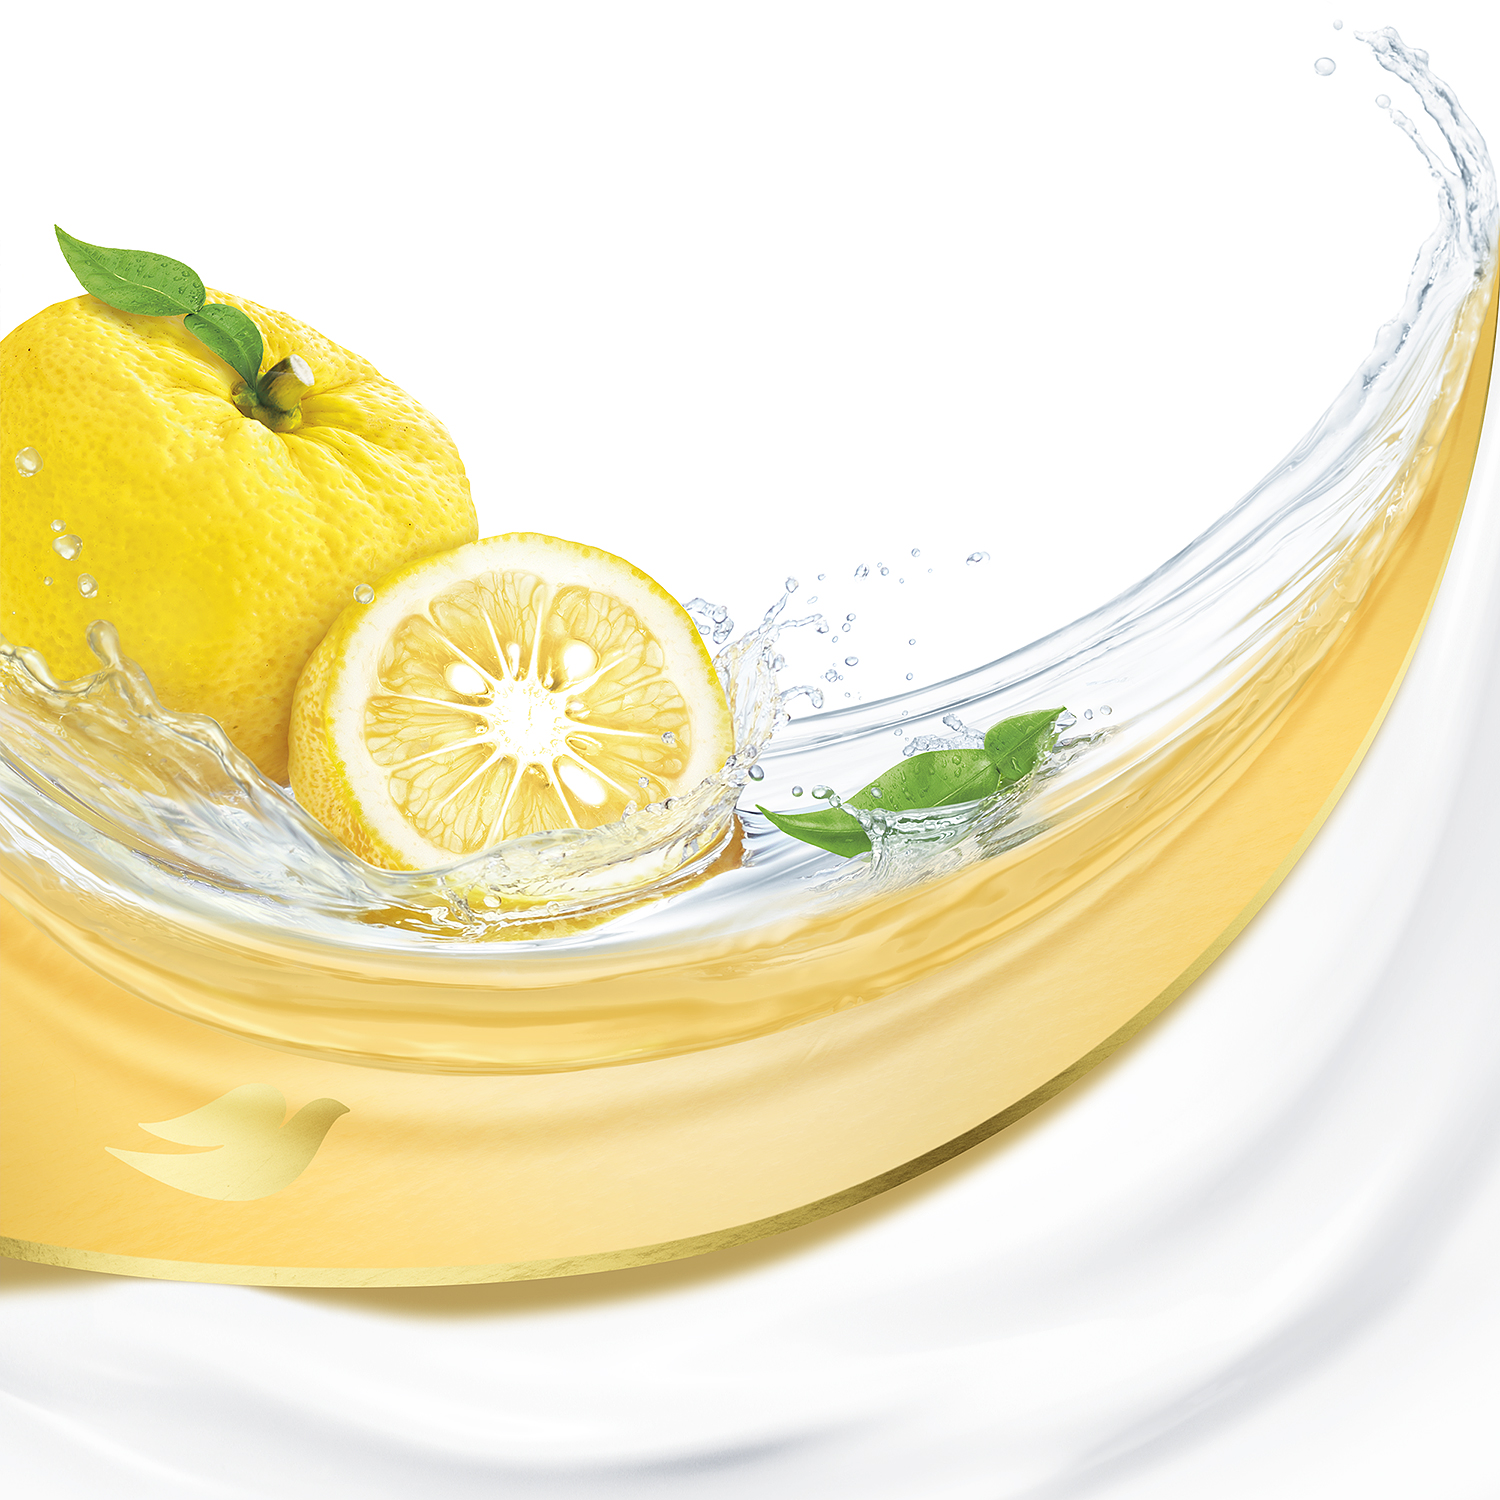 DOVE_CHINA_LEMON01